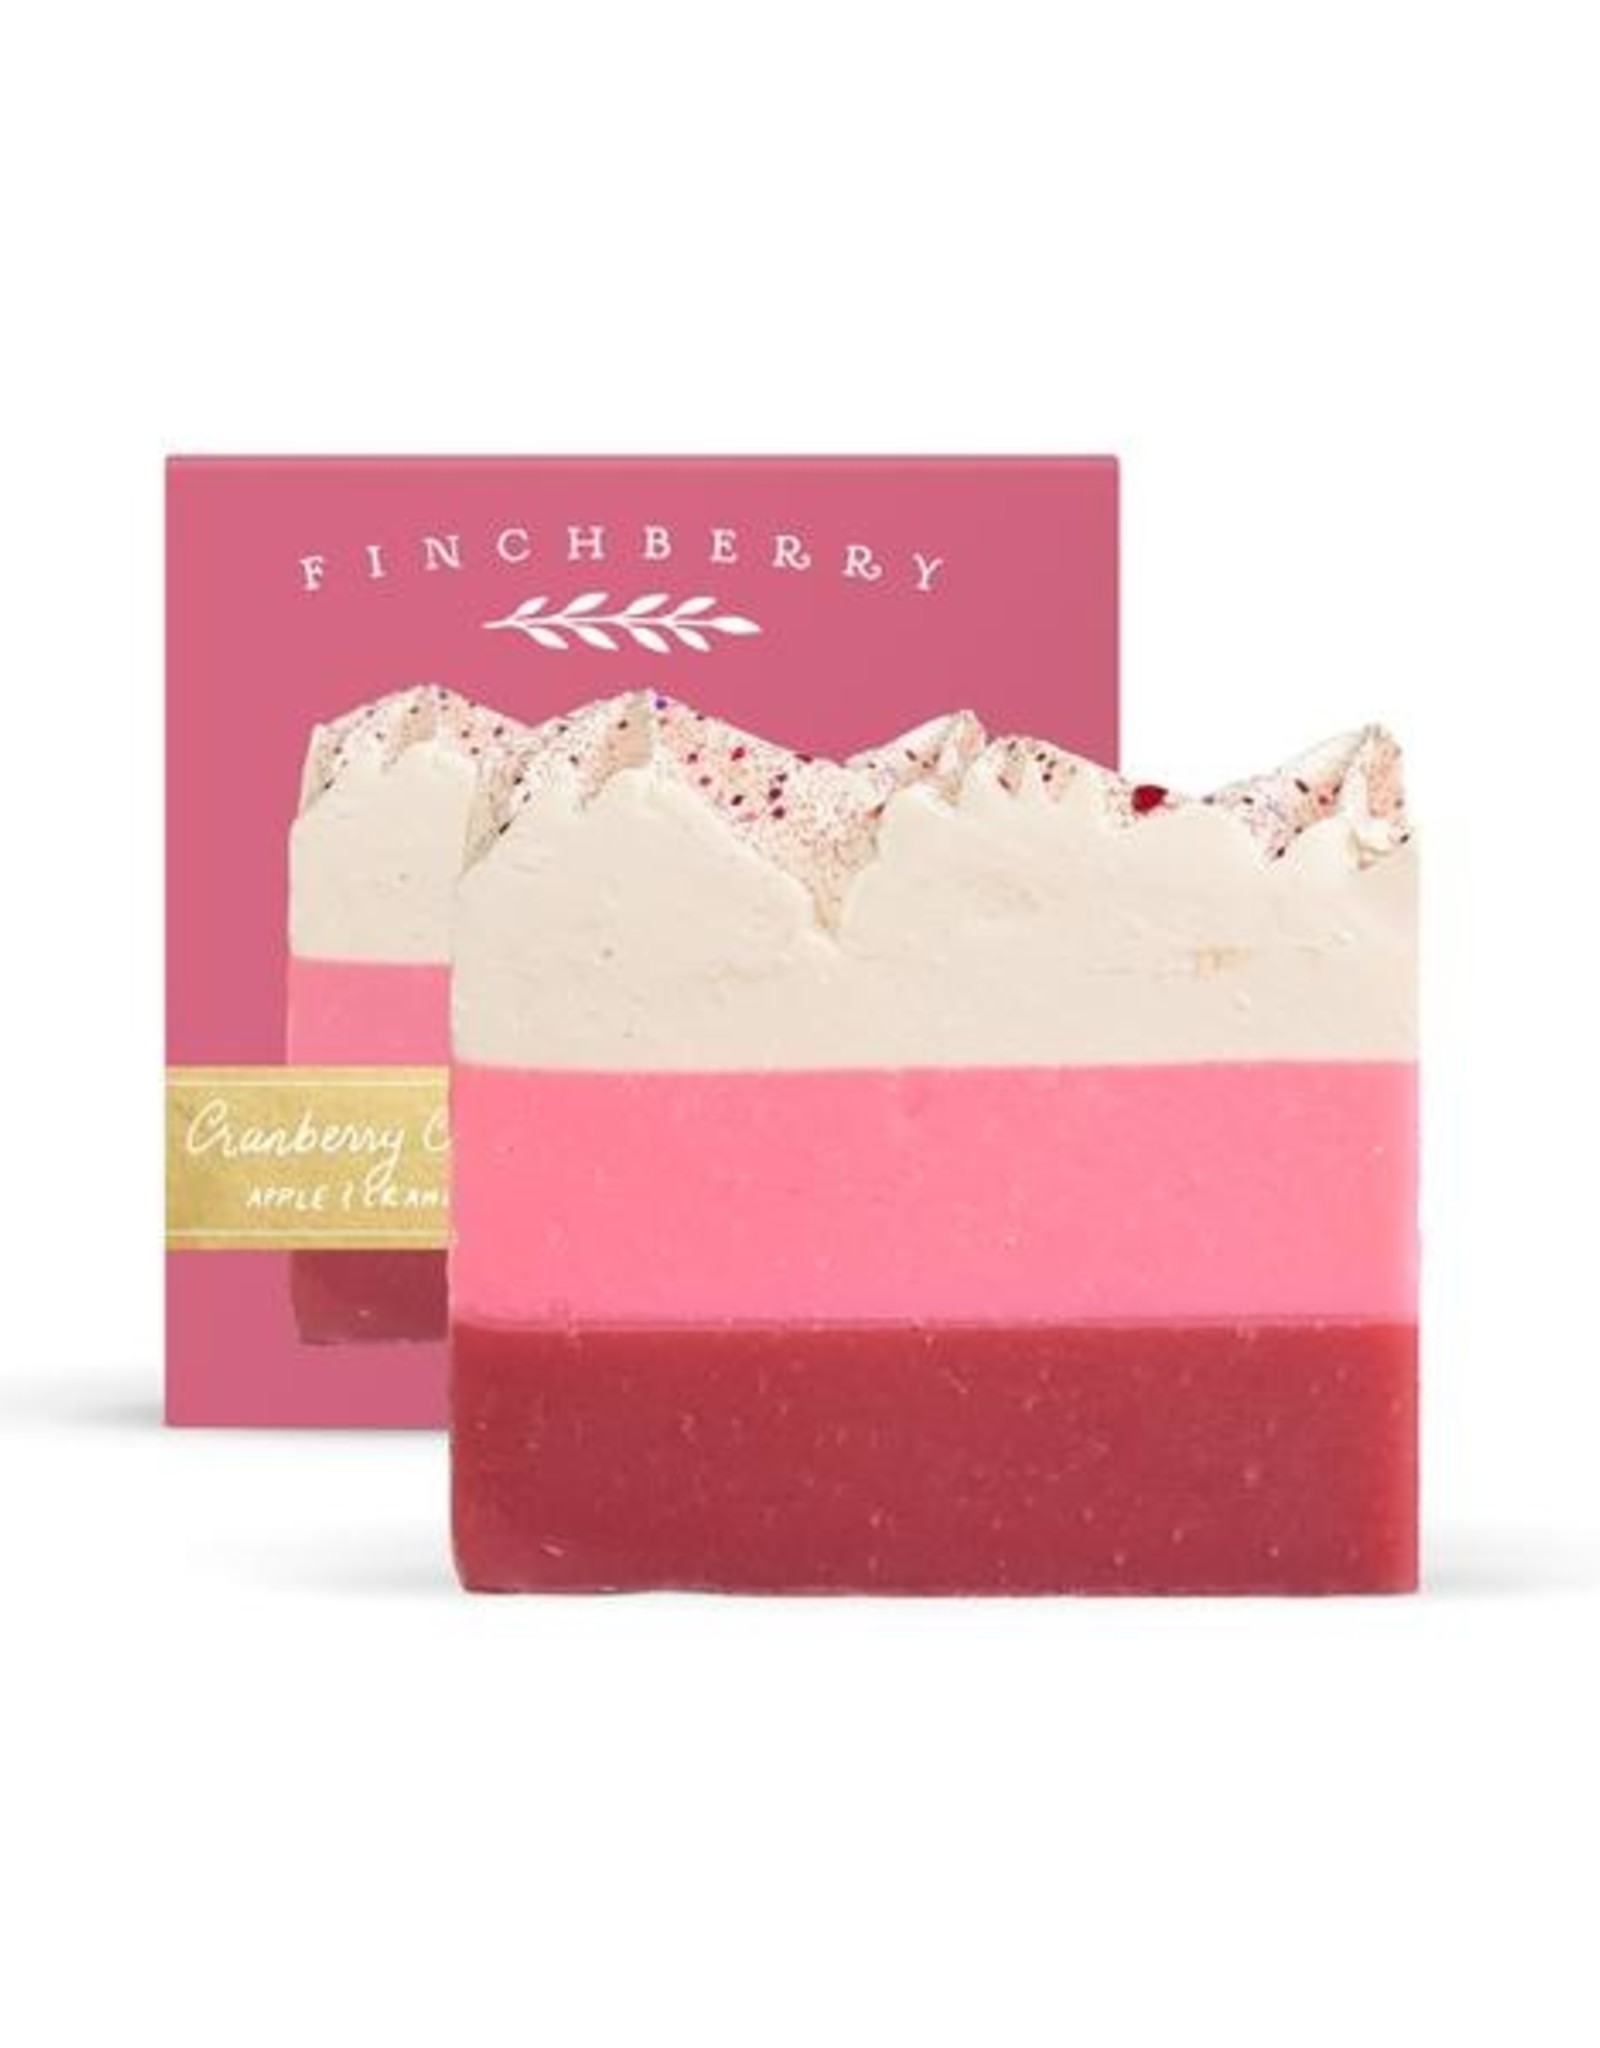 FinchBerry Soapery Cranberry Chutney Holiday Boxed Soap